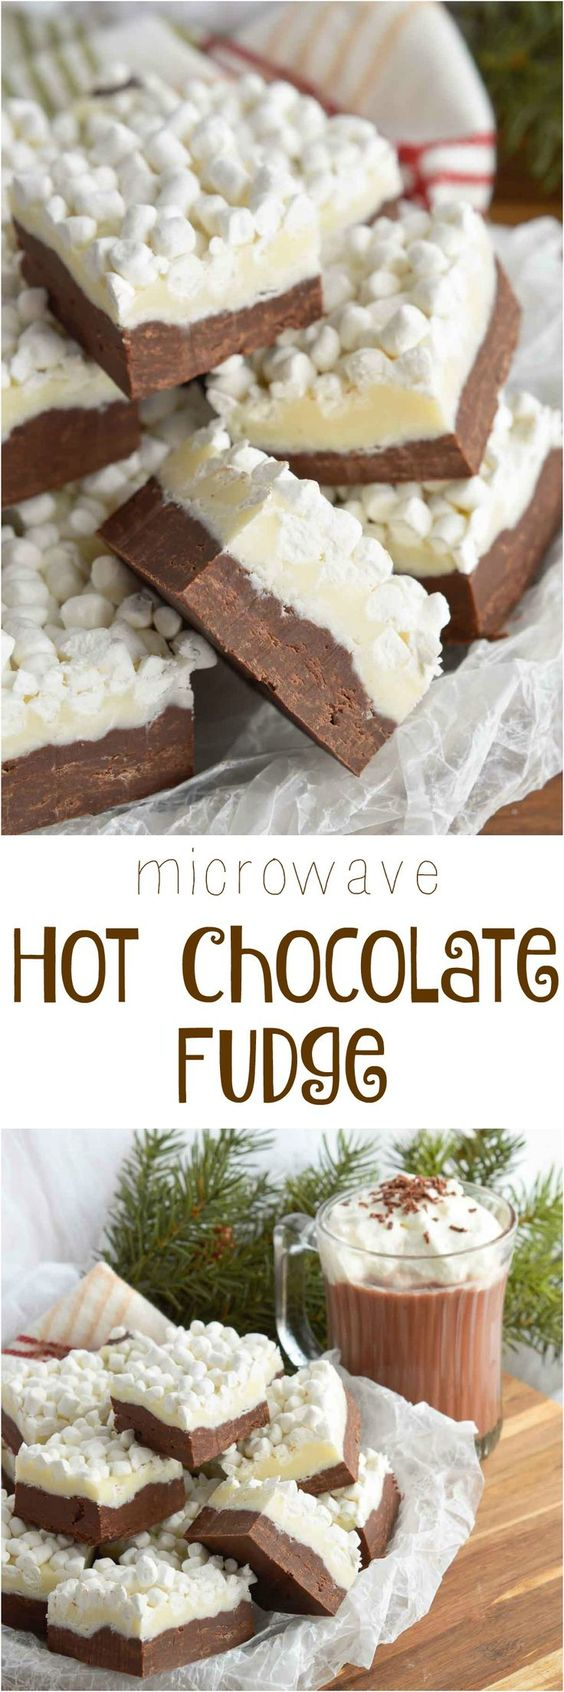 Microwave Hot Chocolate Fudge Recipe via Wonky Wonderful - The BEST Christmas Cookies, Fudge, Candy, Barks and Brittles Recipes - Favorites for Holiday Treats Gift Plates and Goodies Bags! #chrstmascookies #christmascandy #christmastreats #holidaydesserts #holidayrecipes #christmascandies #holidaygiftplates